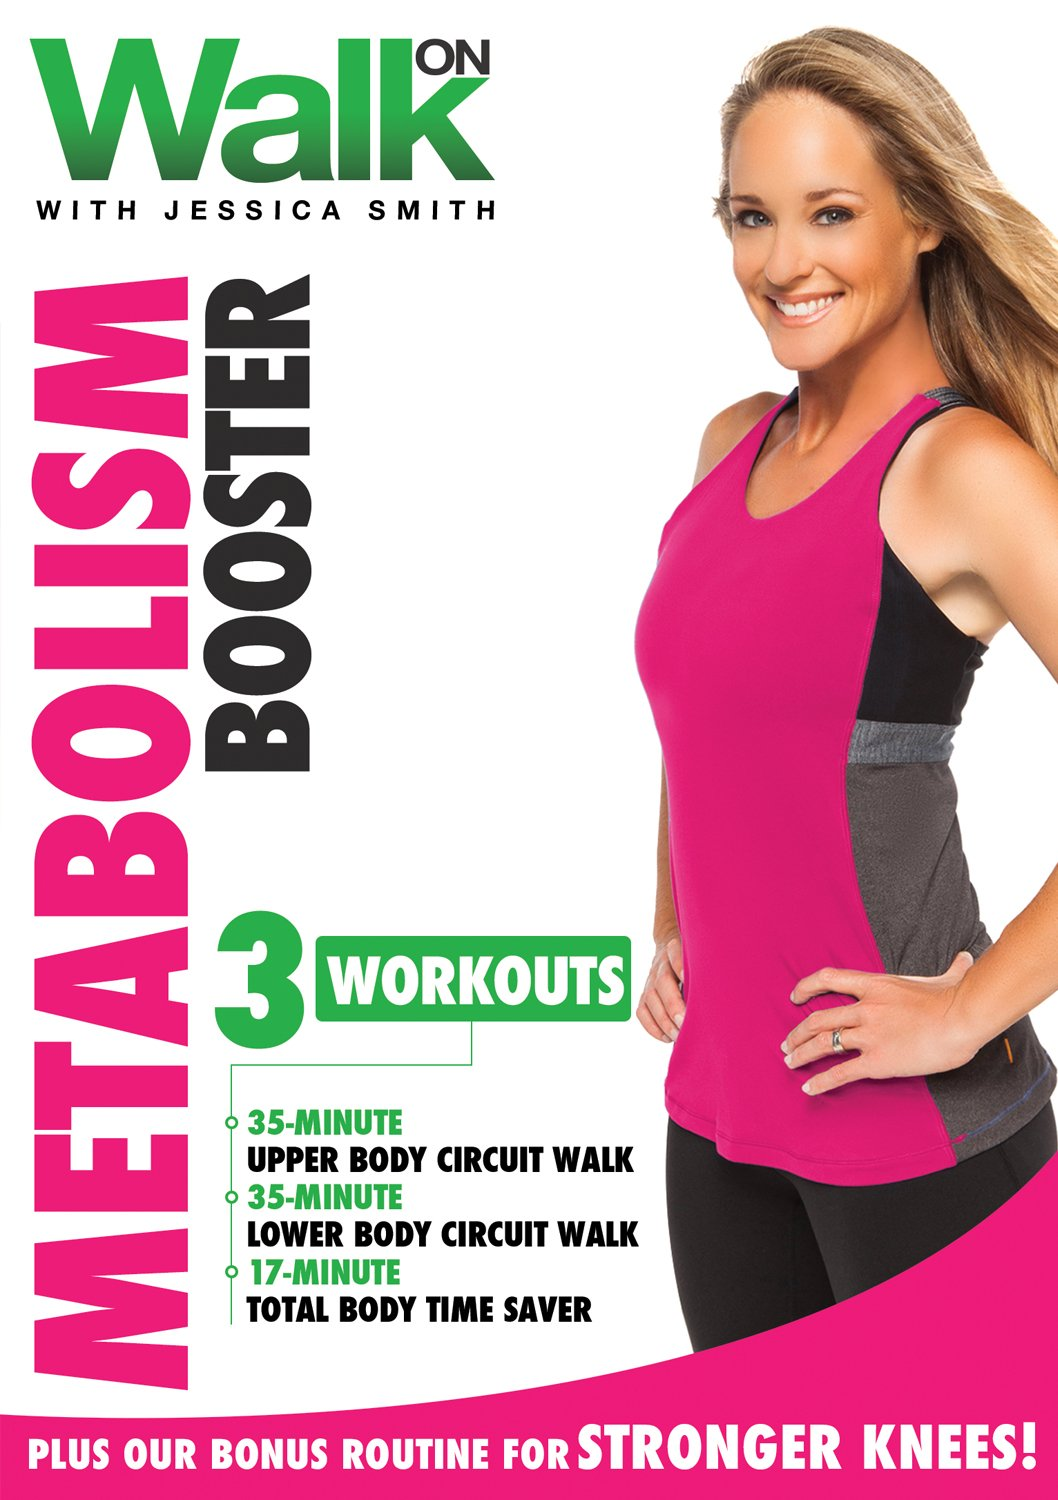 Walk On Metabolism Booster With Jessica Smith At 15minute Circuit Beginner Lower Body Workout Home Strength Training For Women Intermediate Level Movies